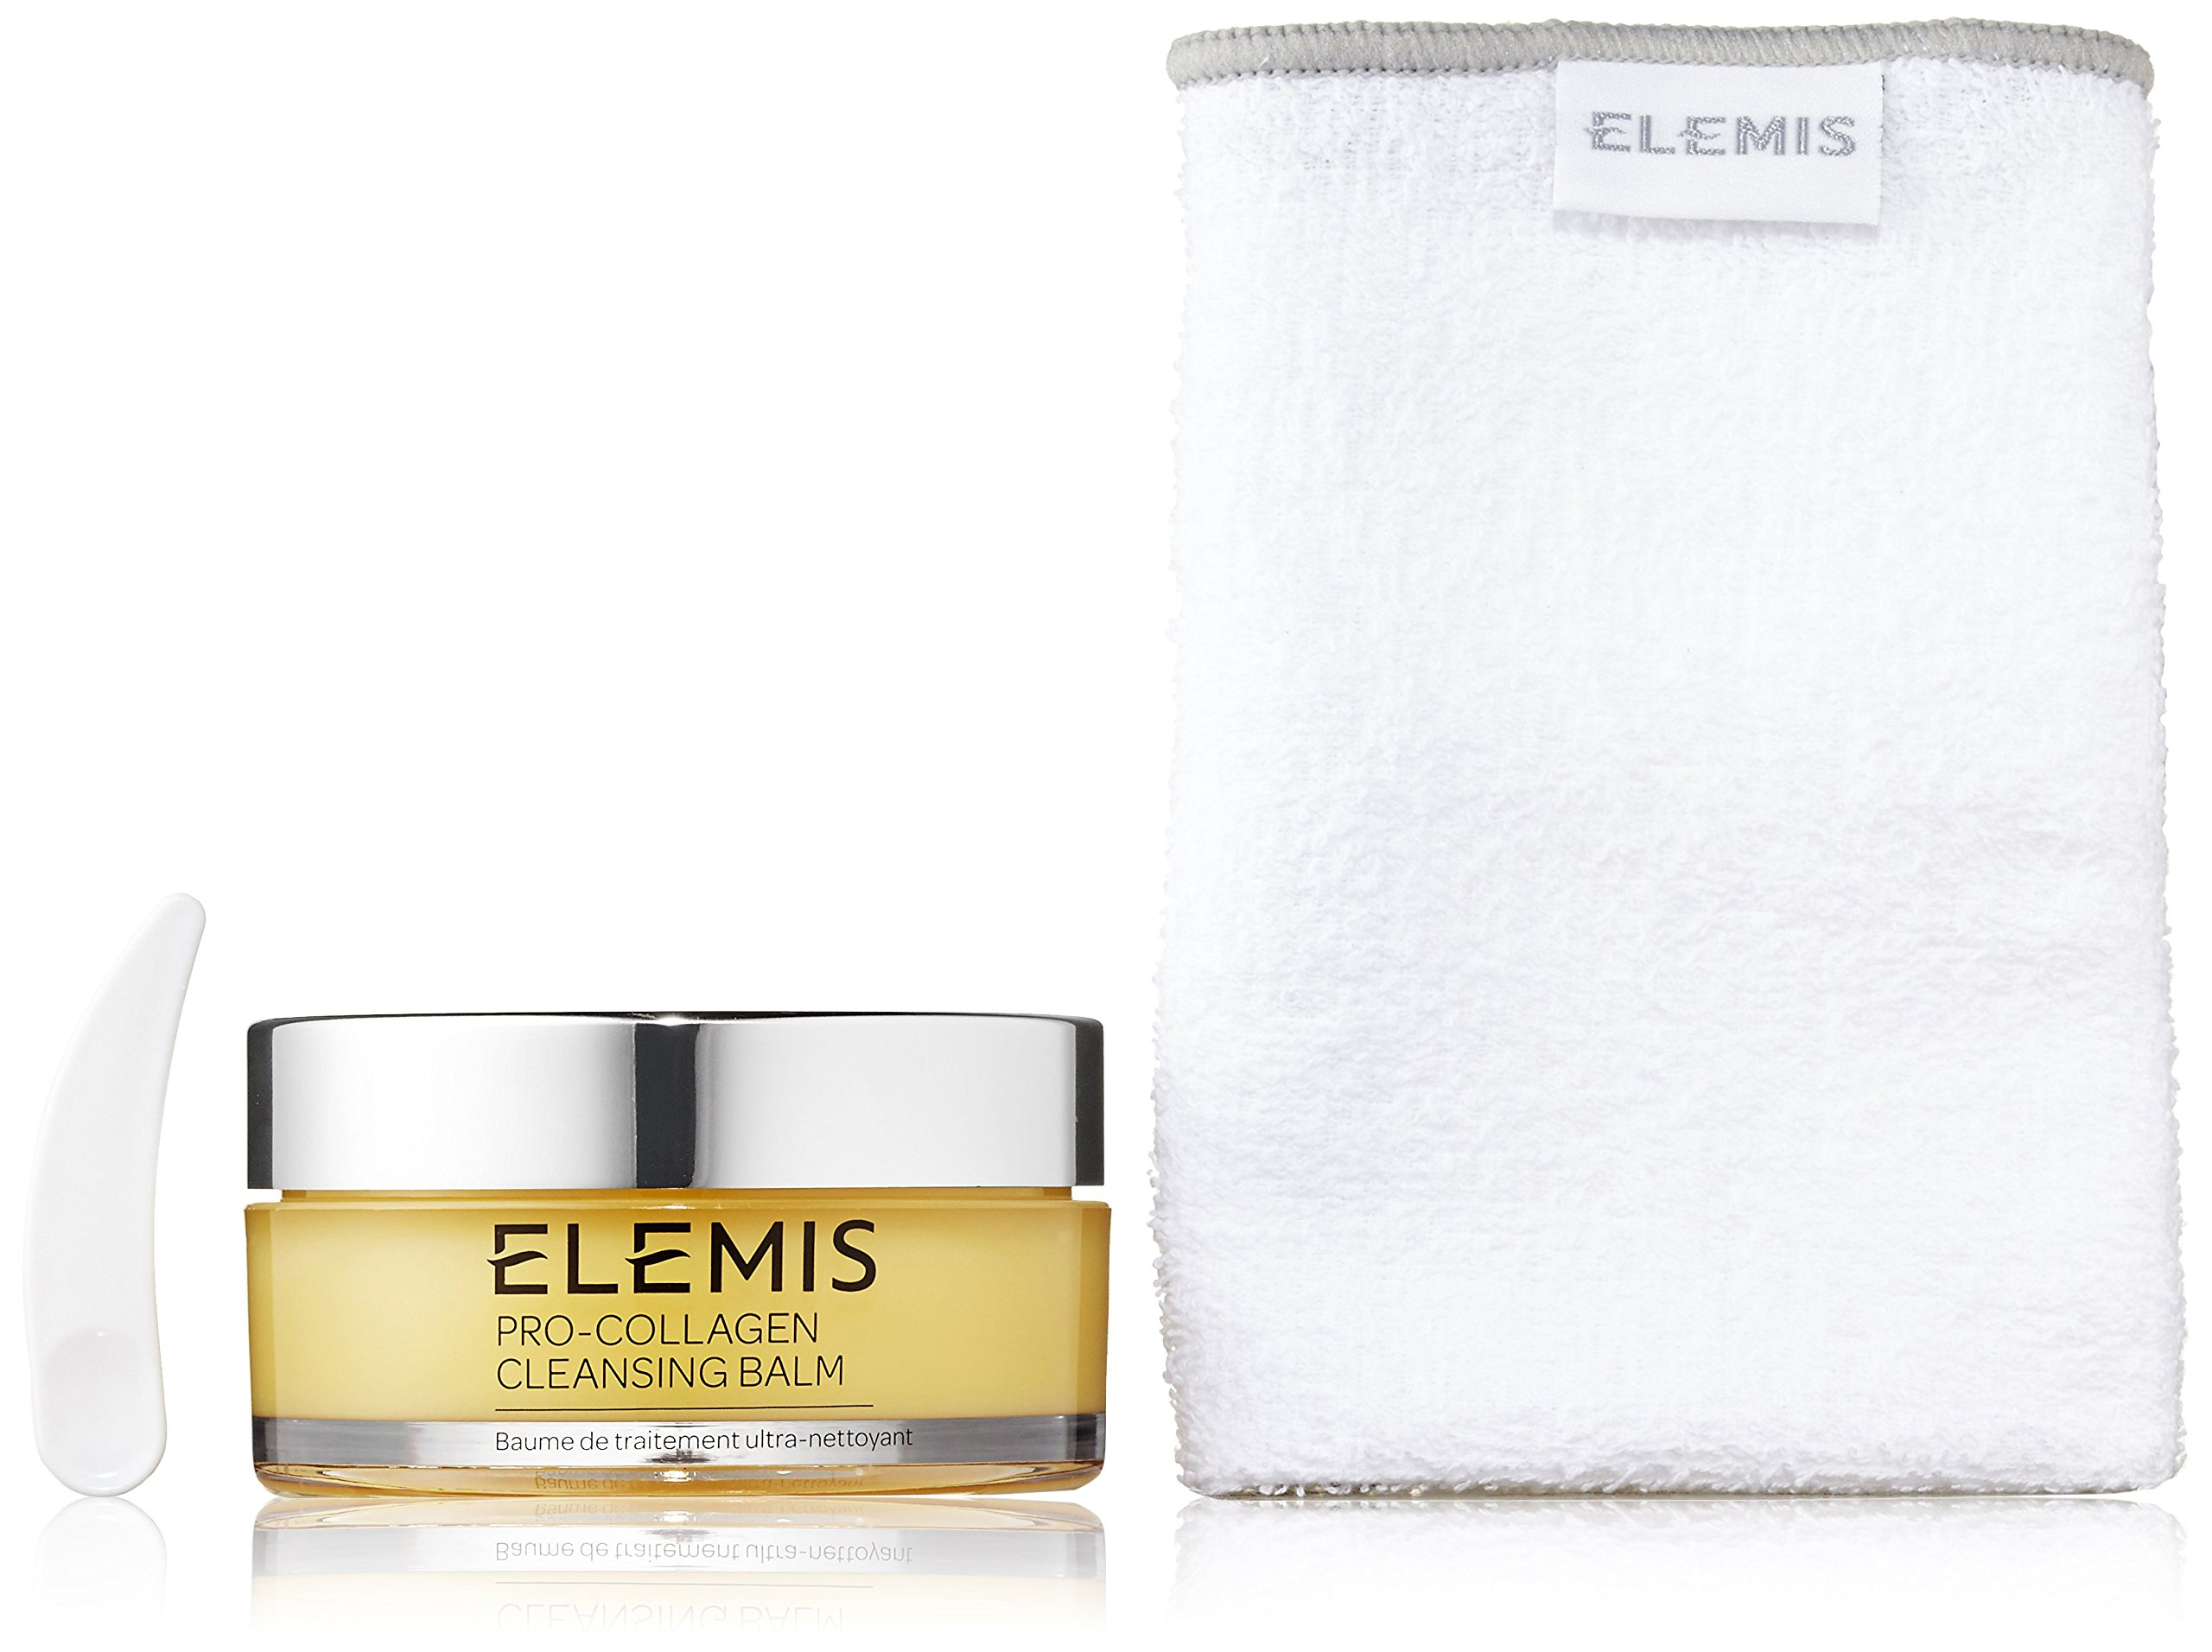 ELEMIS Pro-Collagen Cleansing Balm, Super Cleansing Treatment Balm, 3.7 fl. oz.